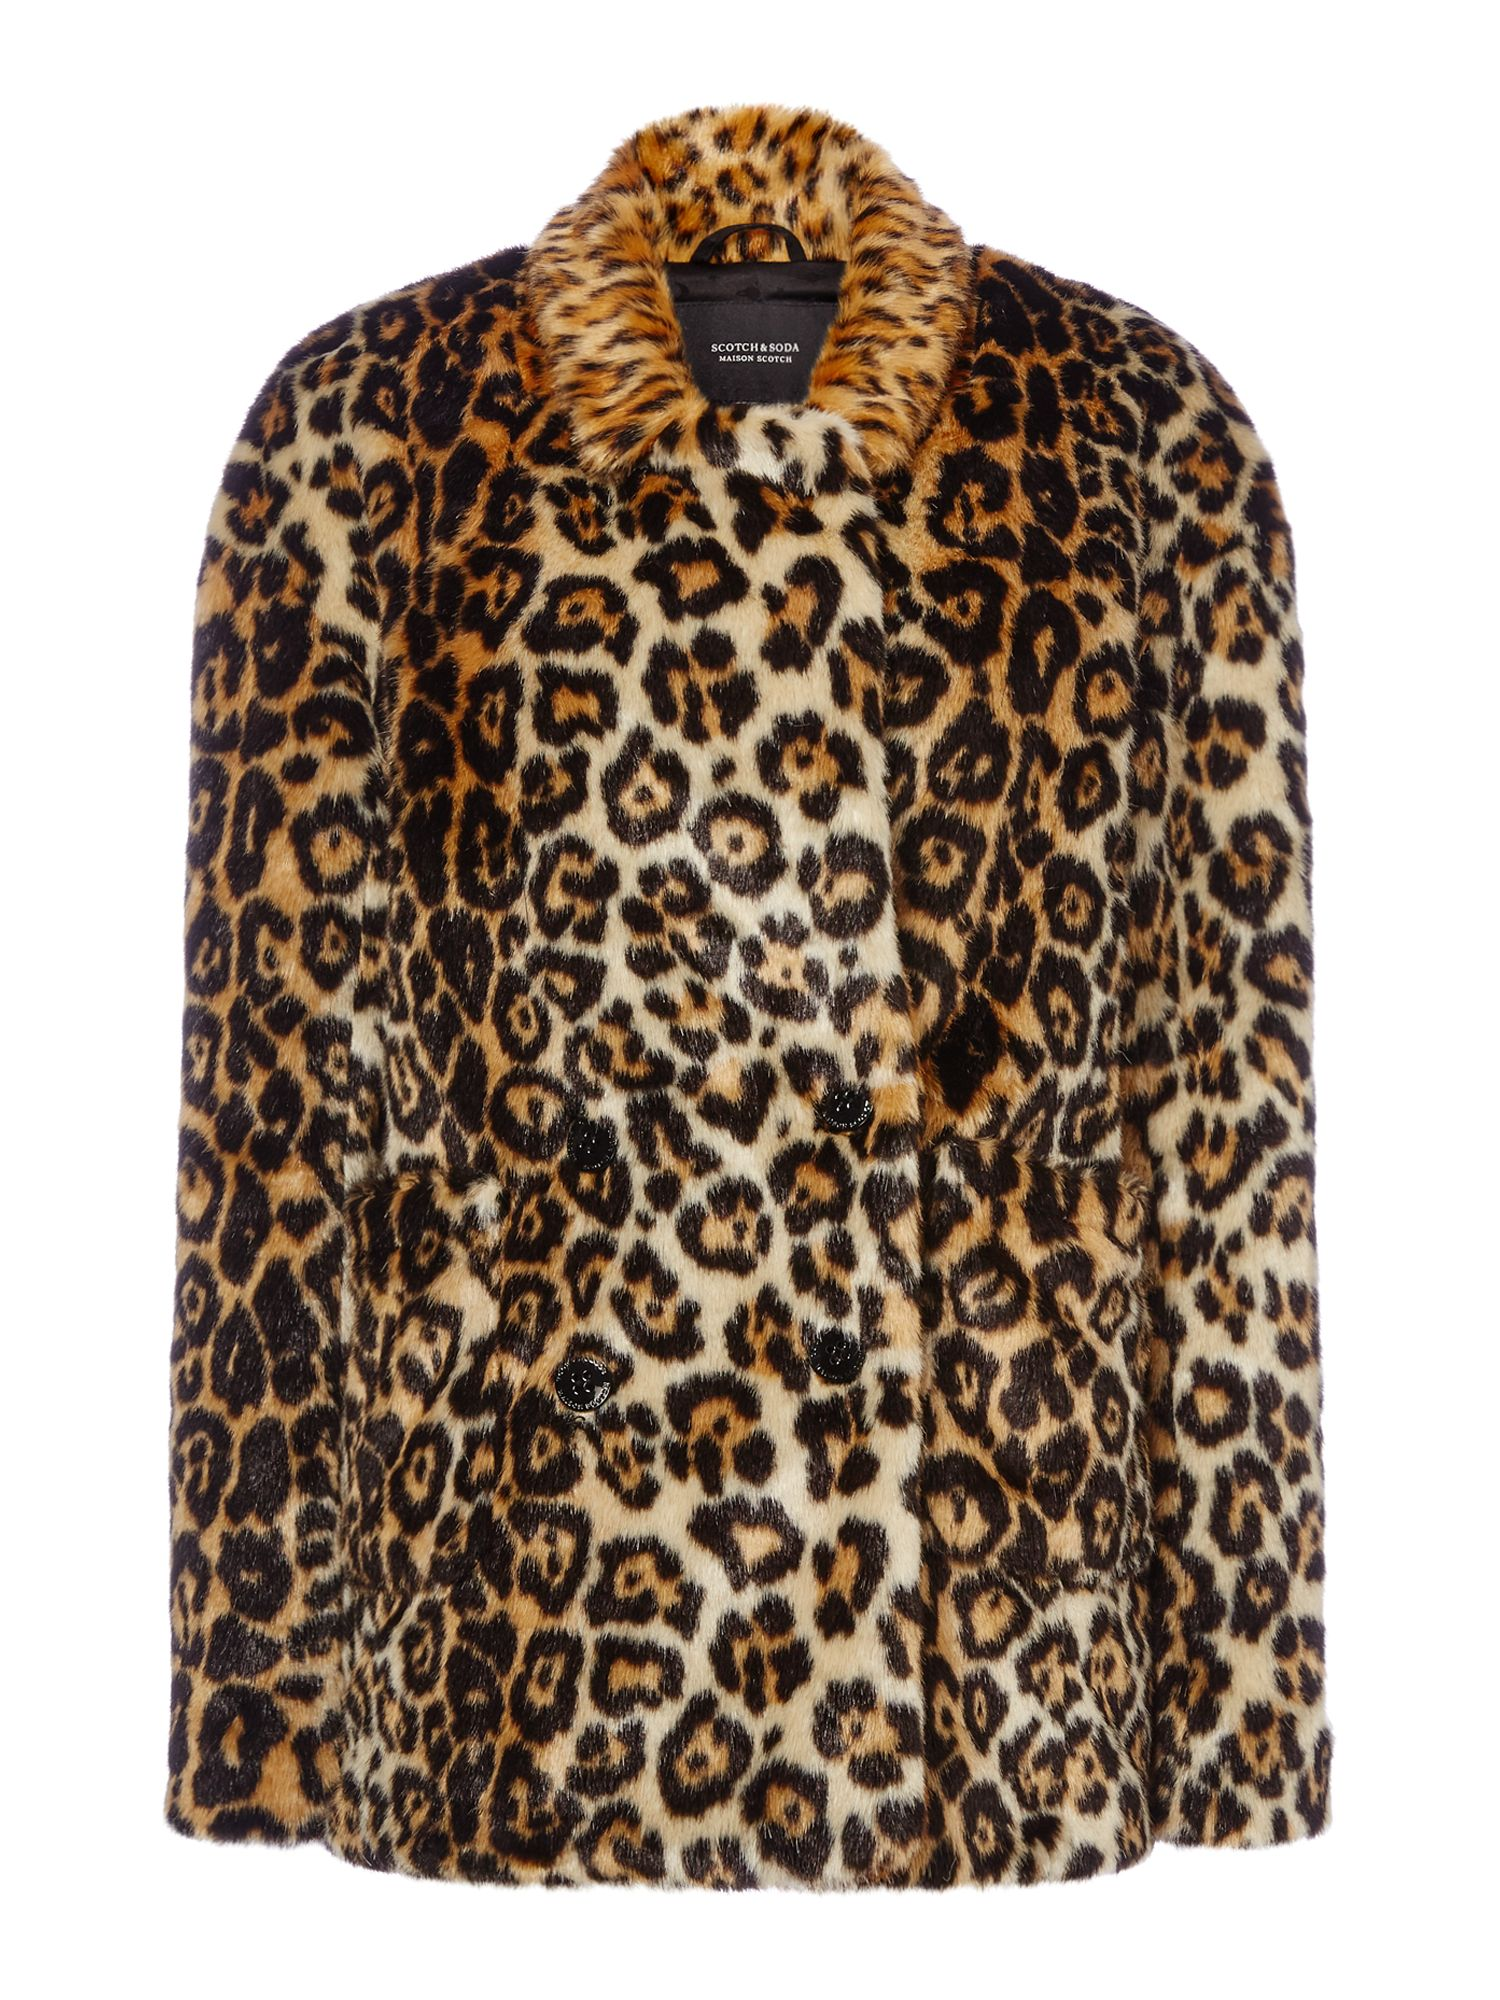 Maison Scotch Leopard Faux Fur Coat, Leopard